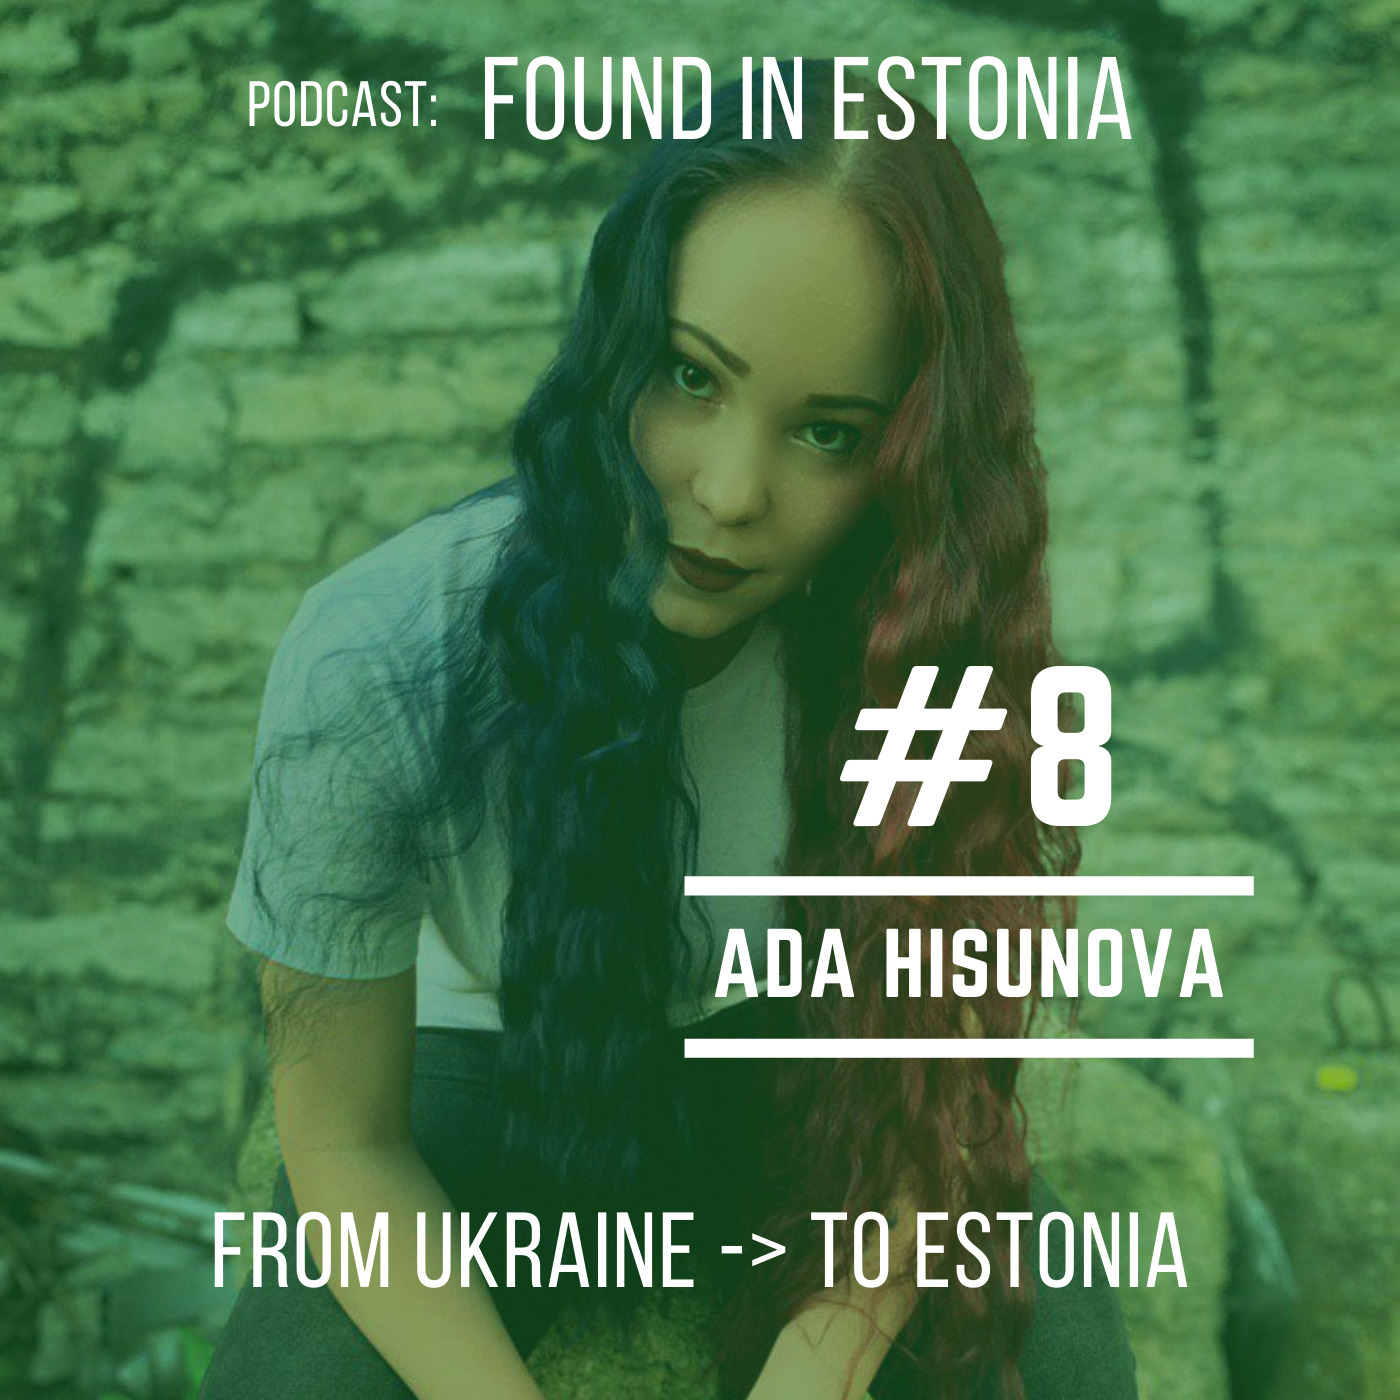 #8 Ada Hisunova from Ukraine to Estonia